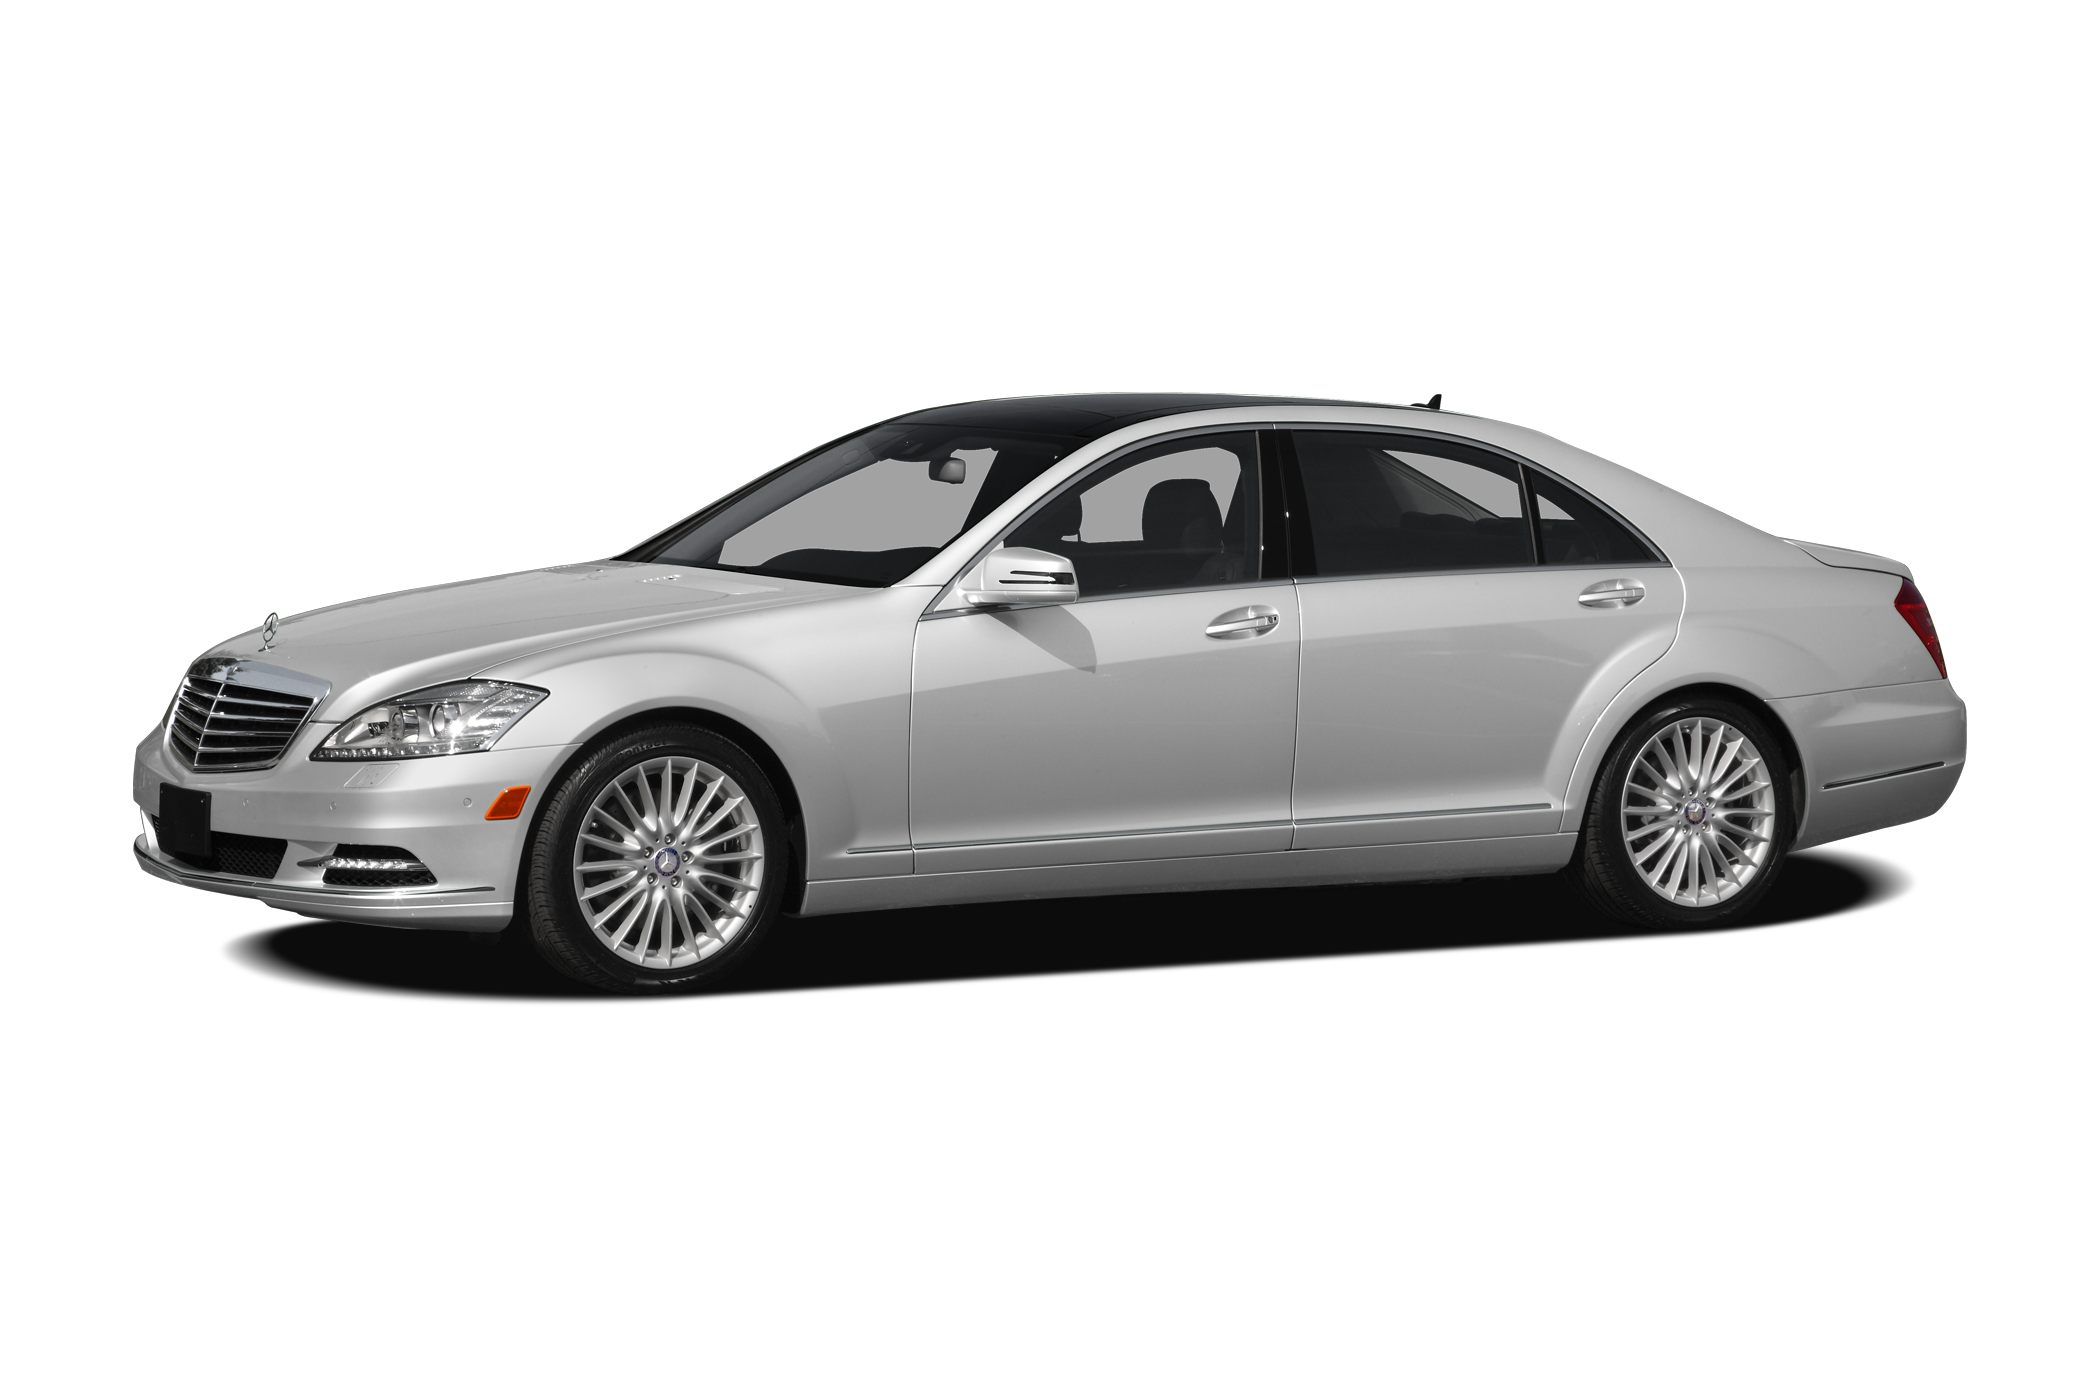 2010 Mercedes-Benz S-Class S550 Sedan for sale in Hollywood for $36,999 with 51,876 miles.